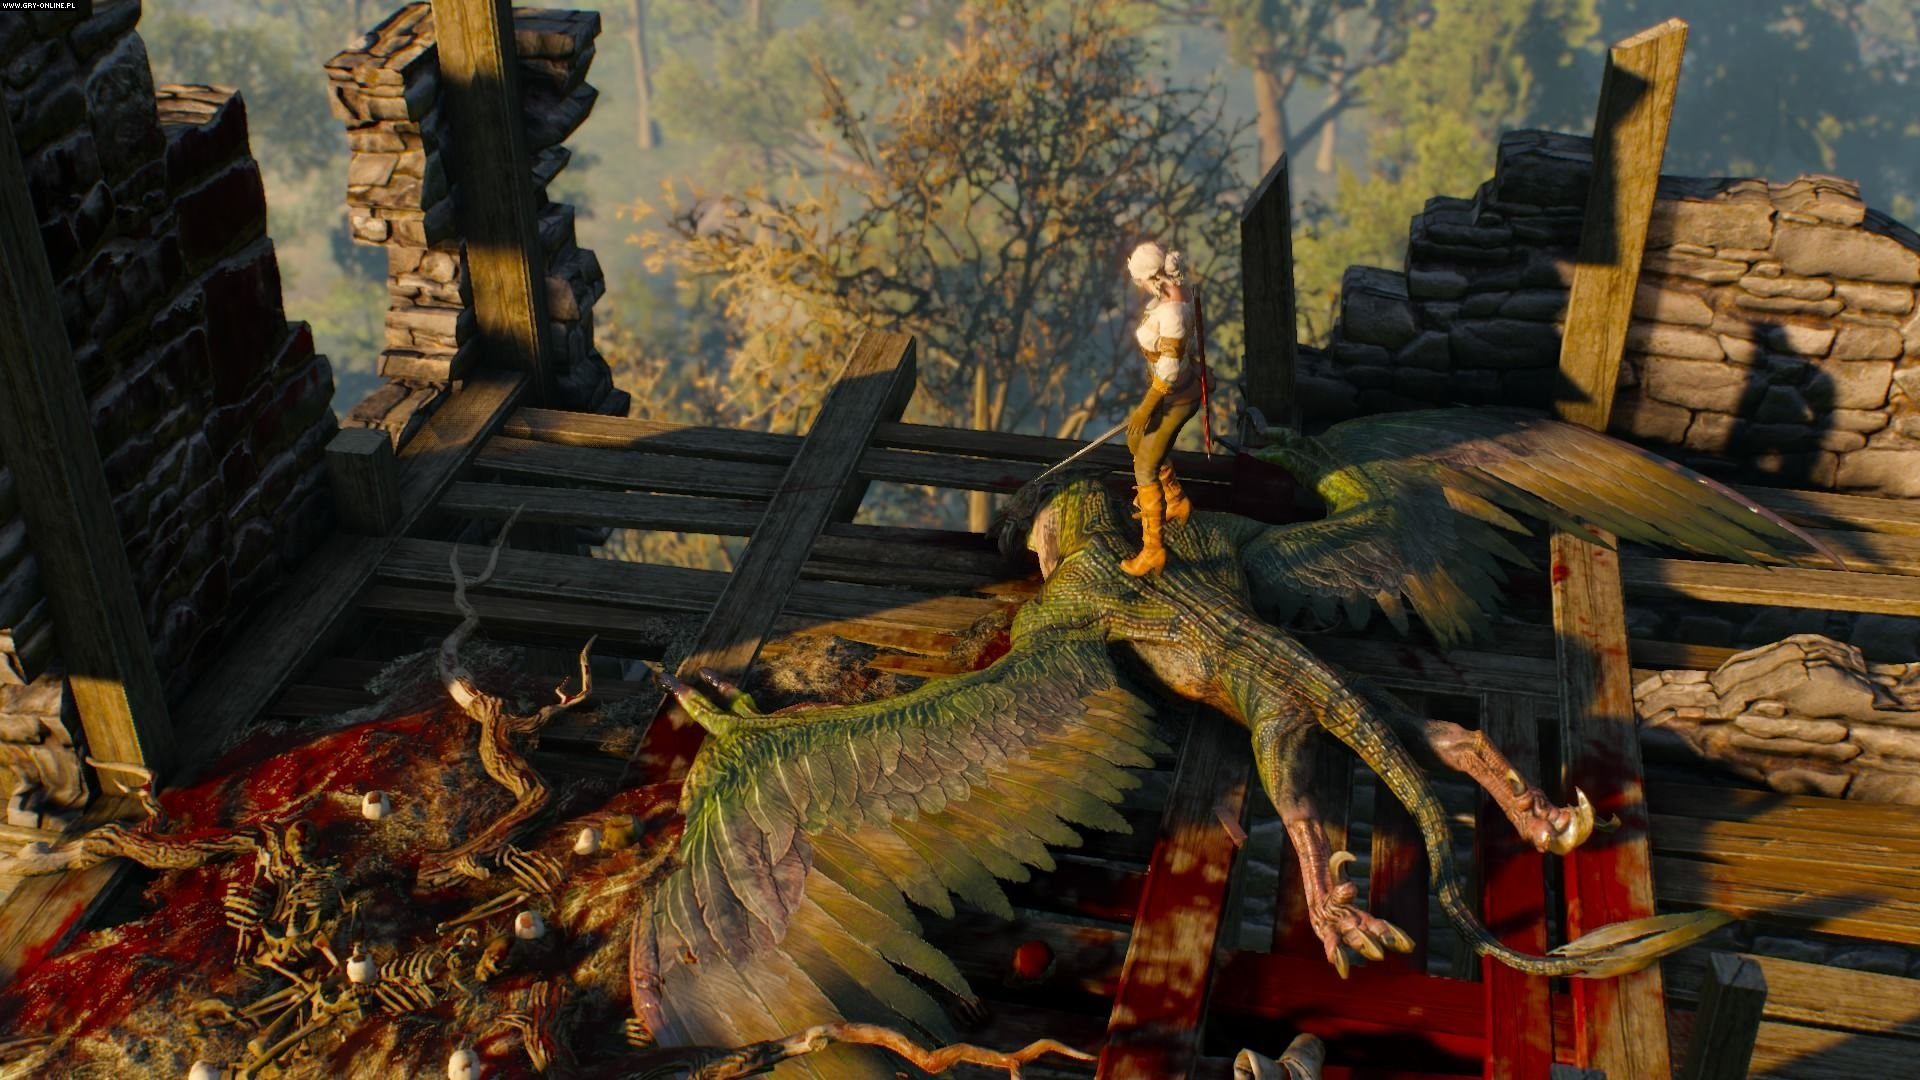 The Witcher 3: Wild Hunt PS4 Games Image 2/185, CD Projekt RED, Bandai Namco Entertainment